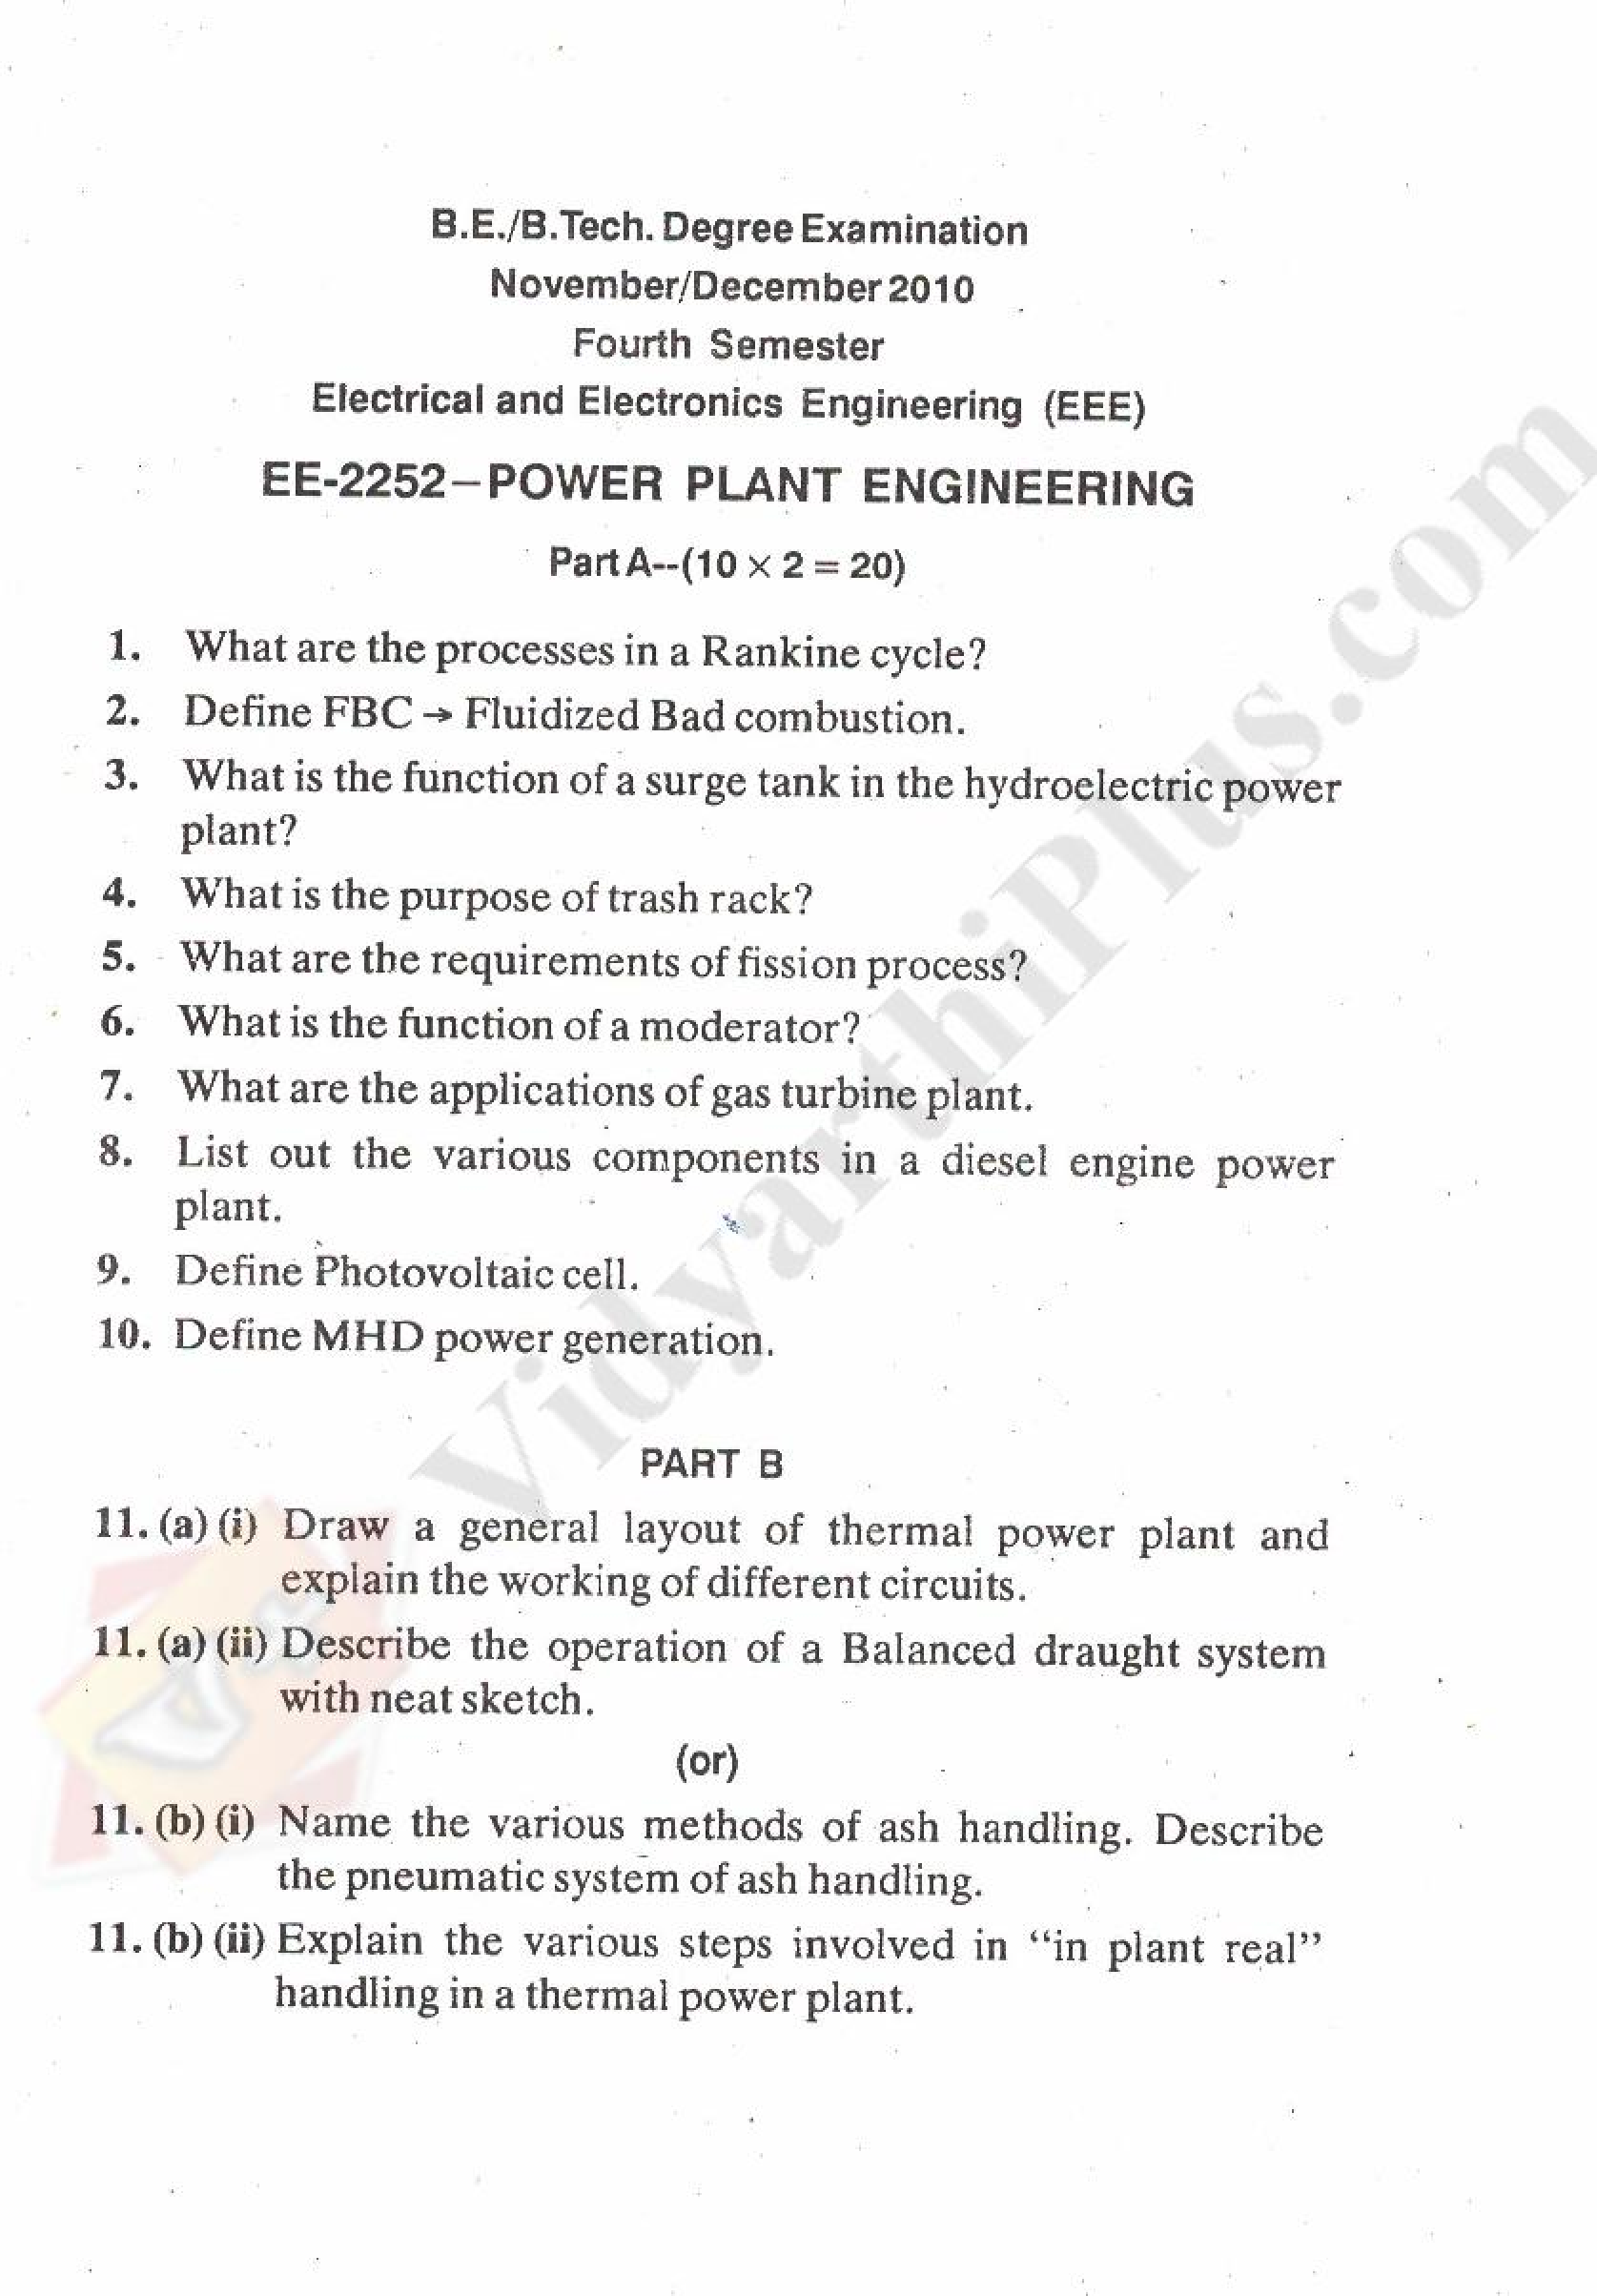 Power Plant Engineering Solved Question Papers - 2015 Edition